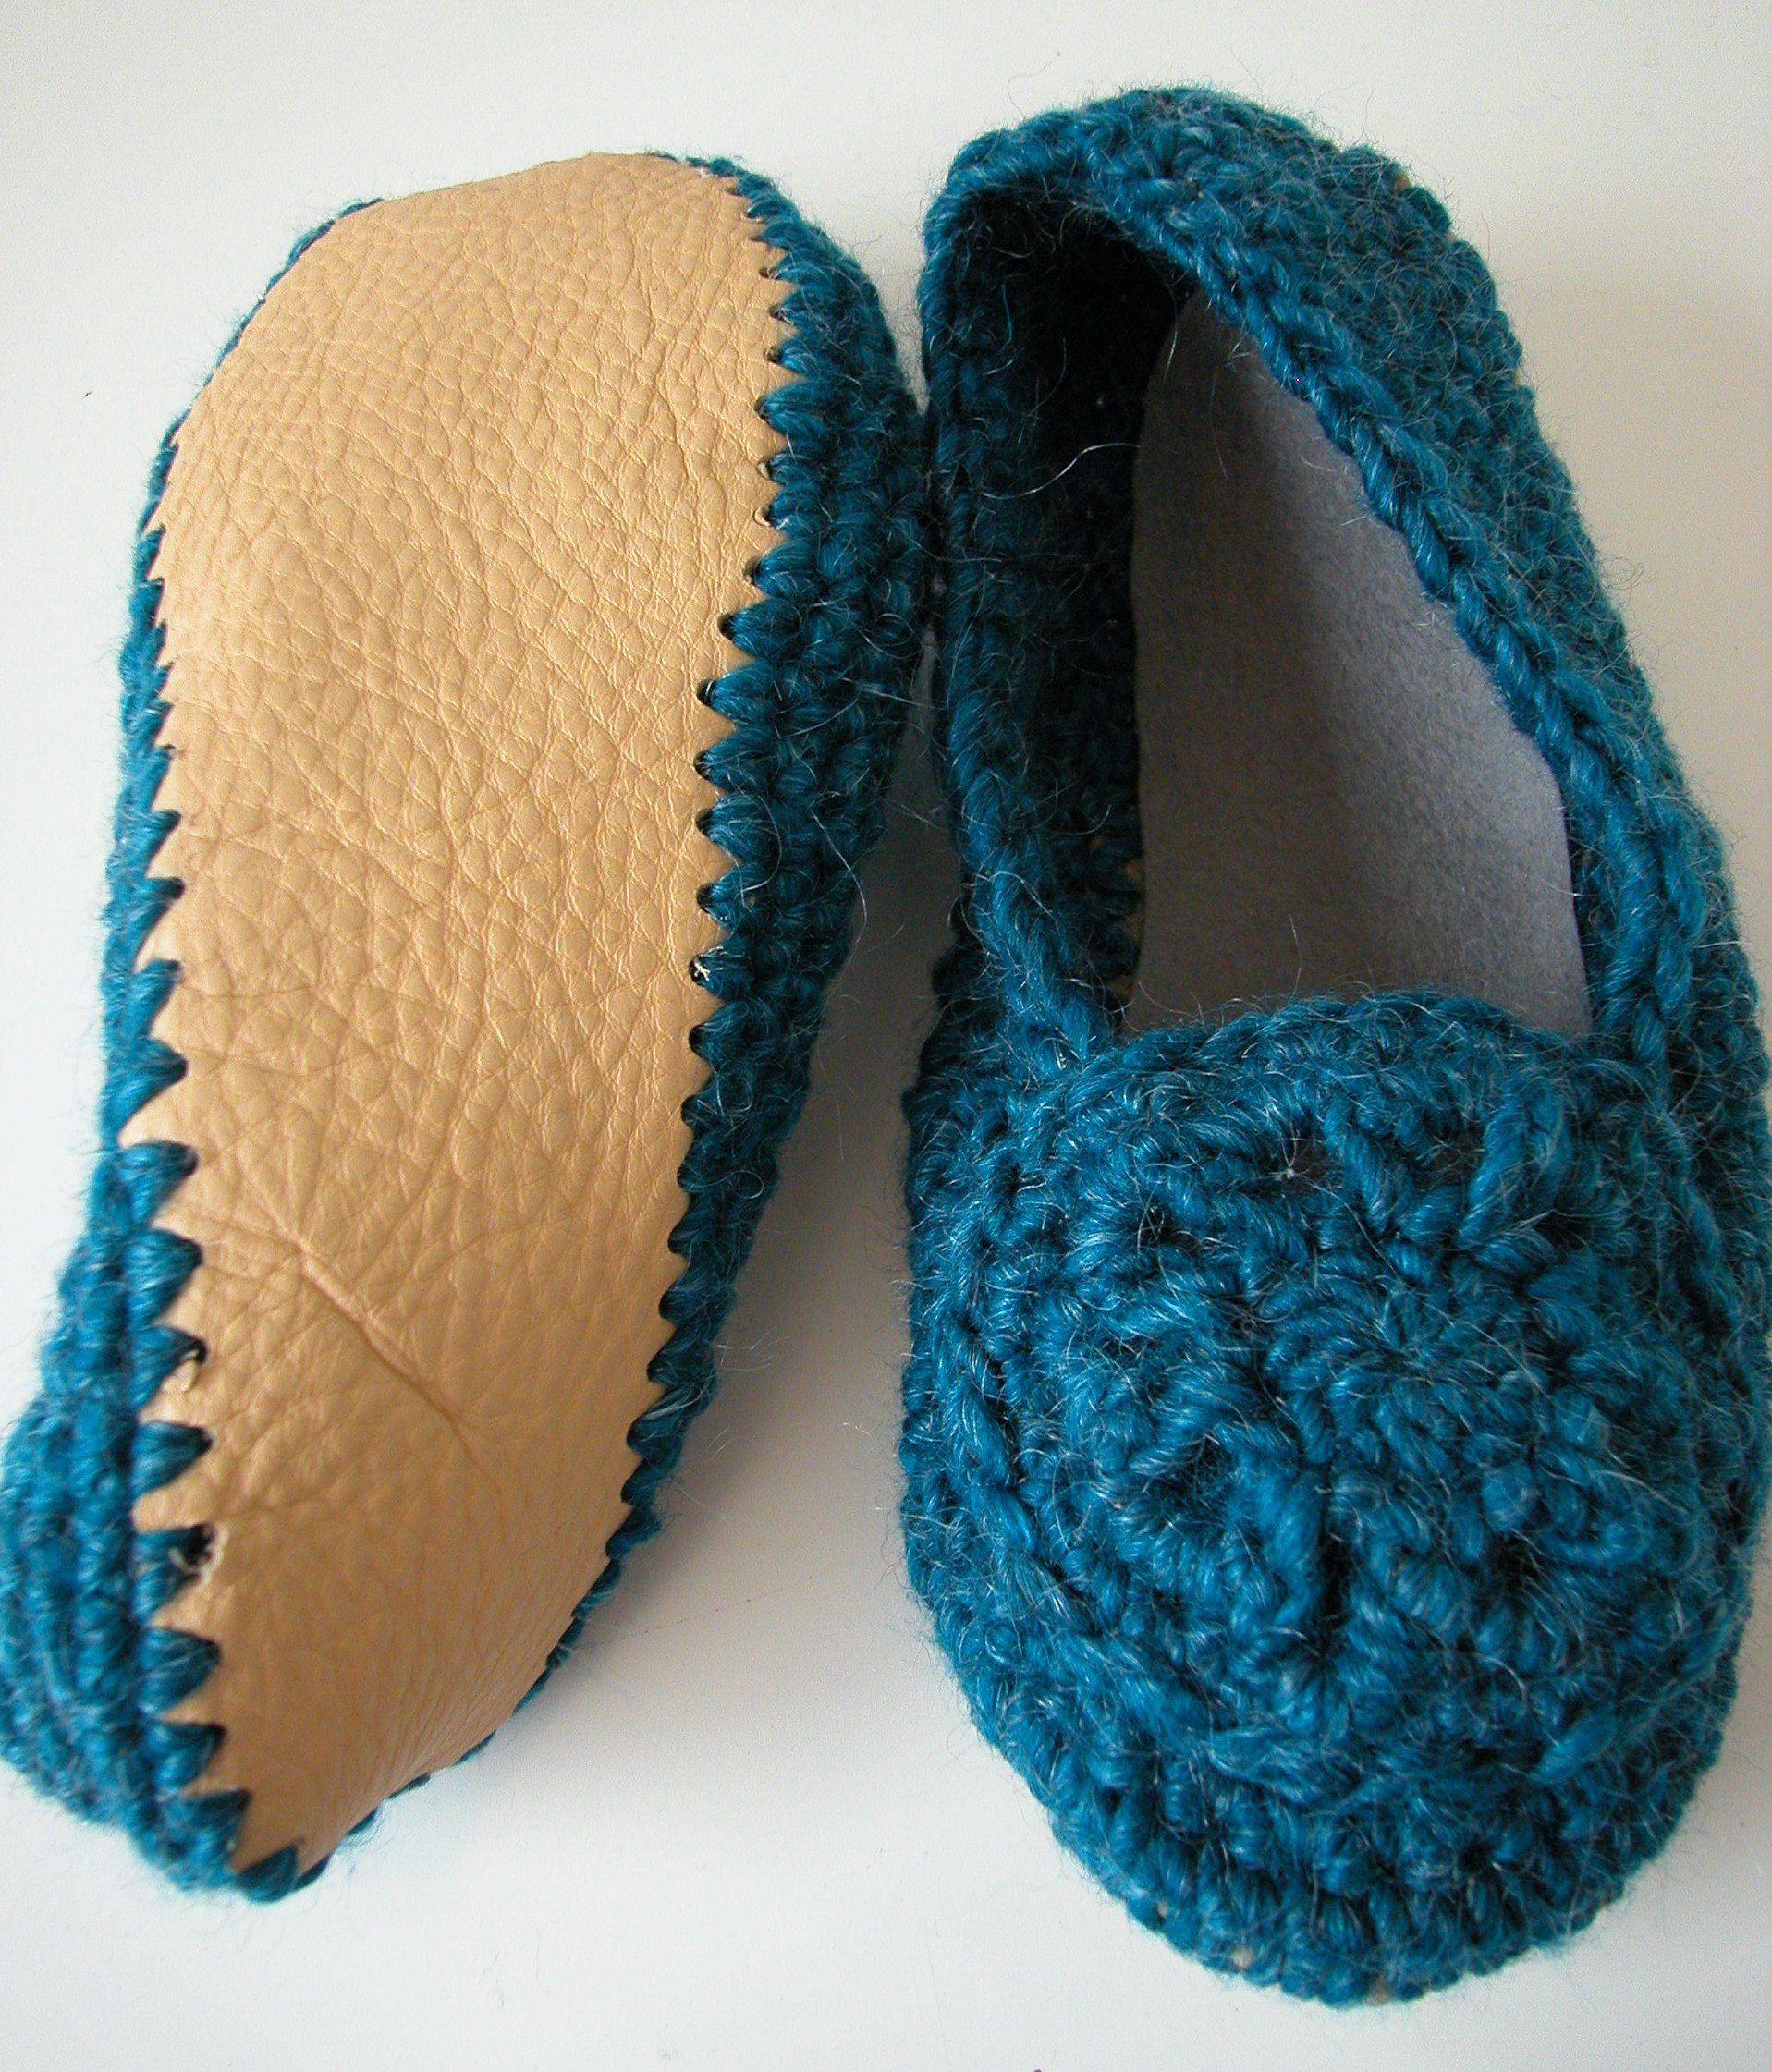 Knitting Pattern For Slippers With Soles : crochet slipper class the knit cafe